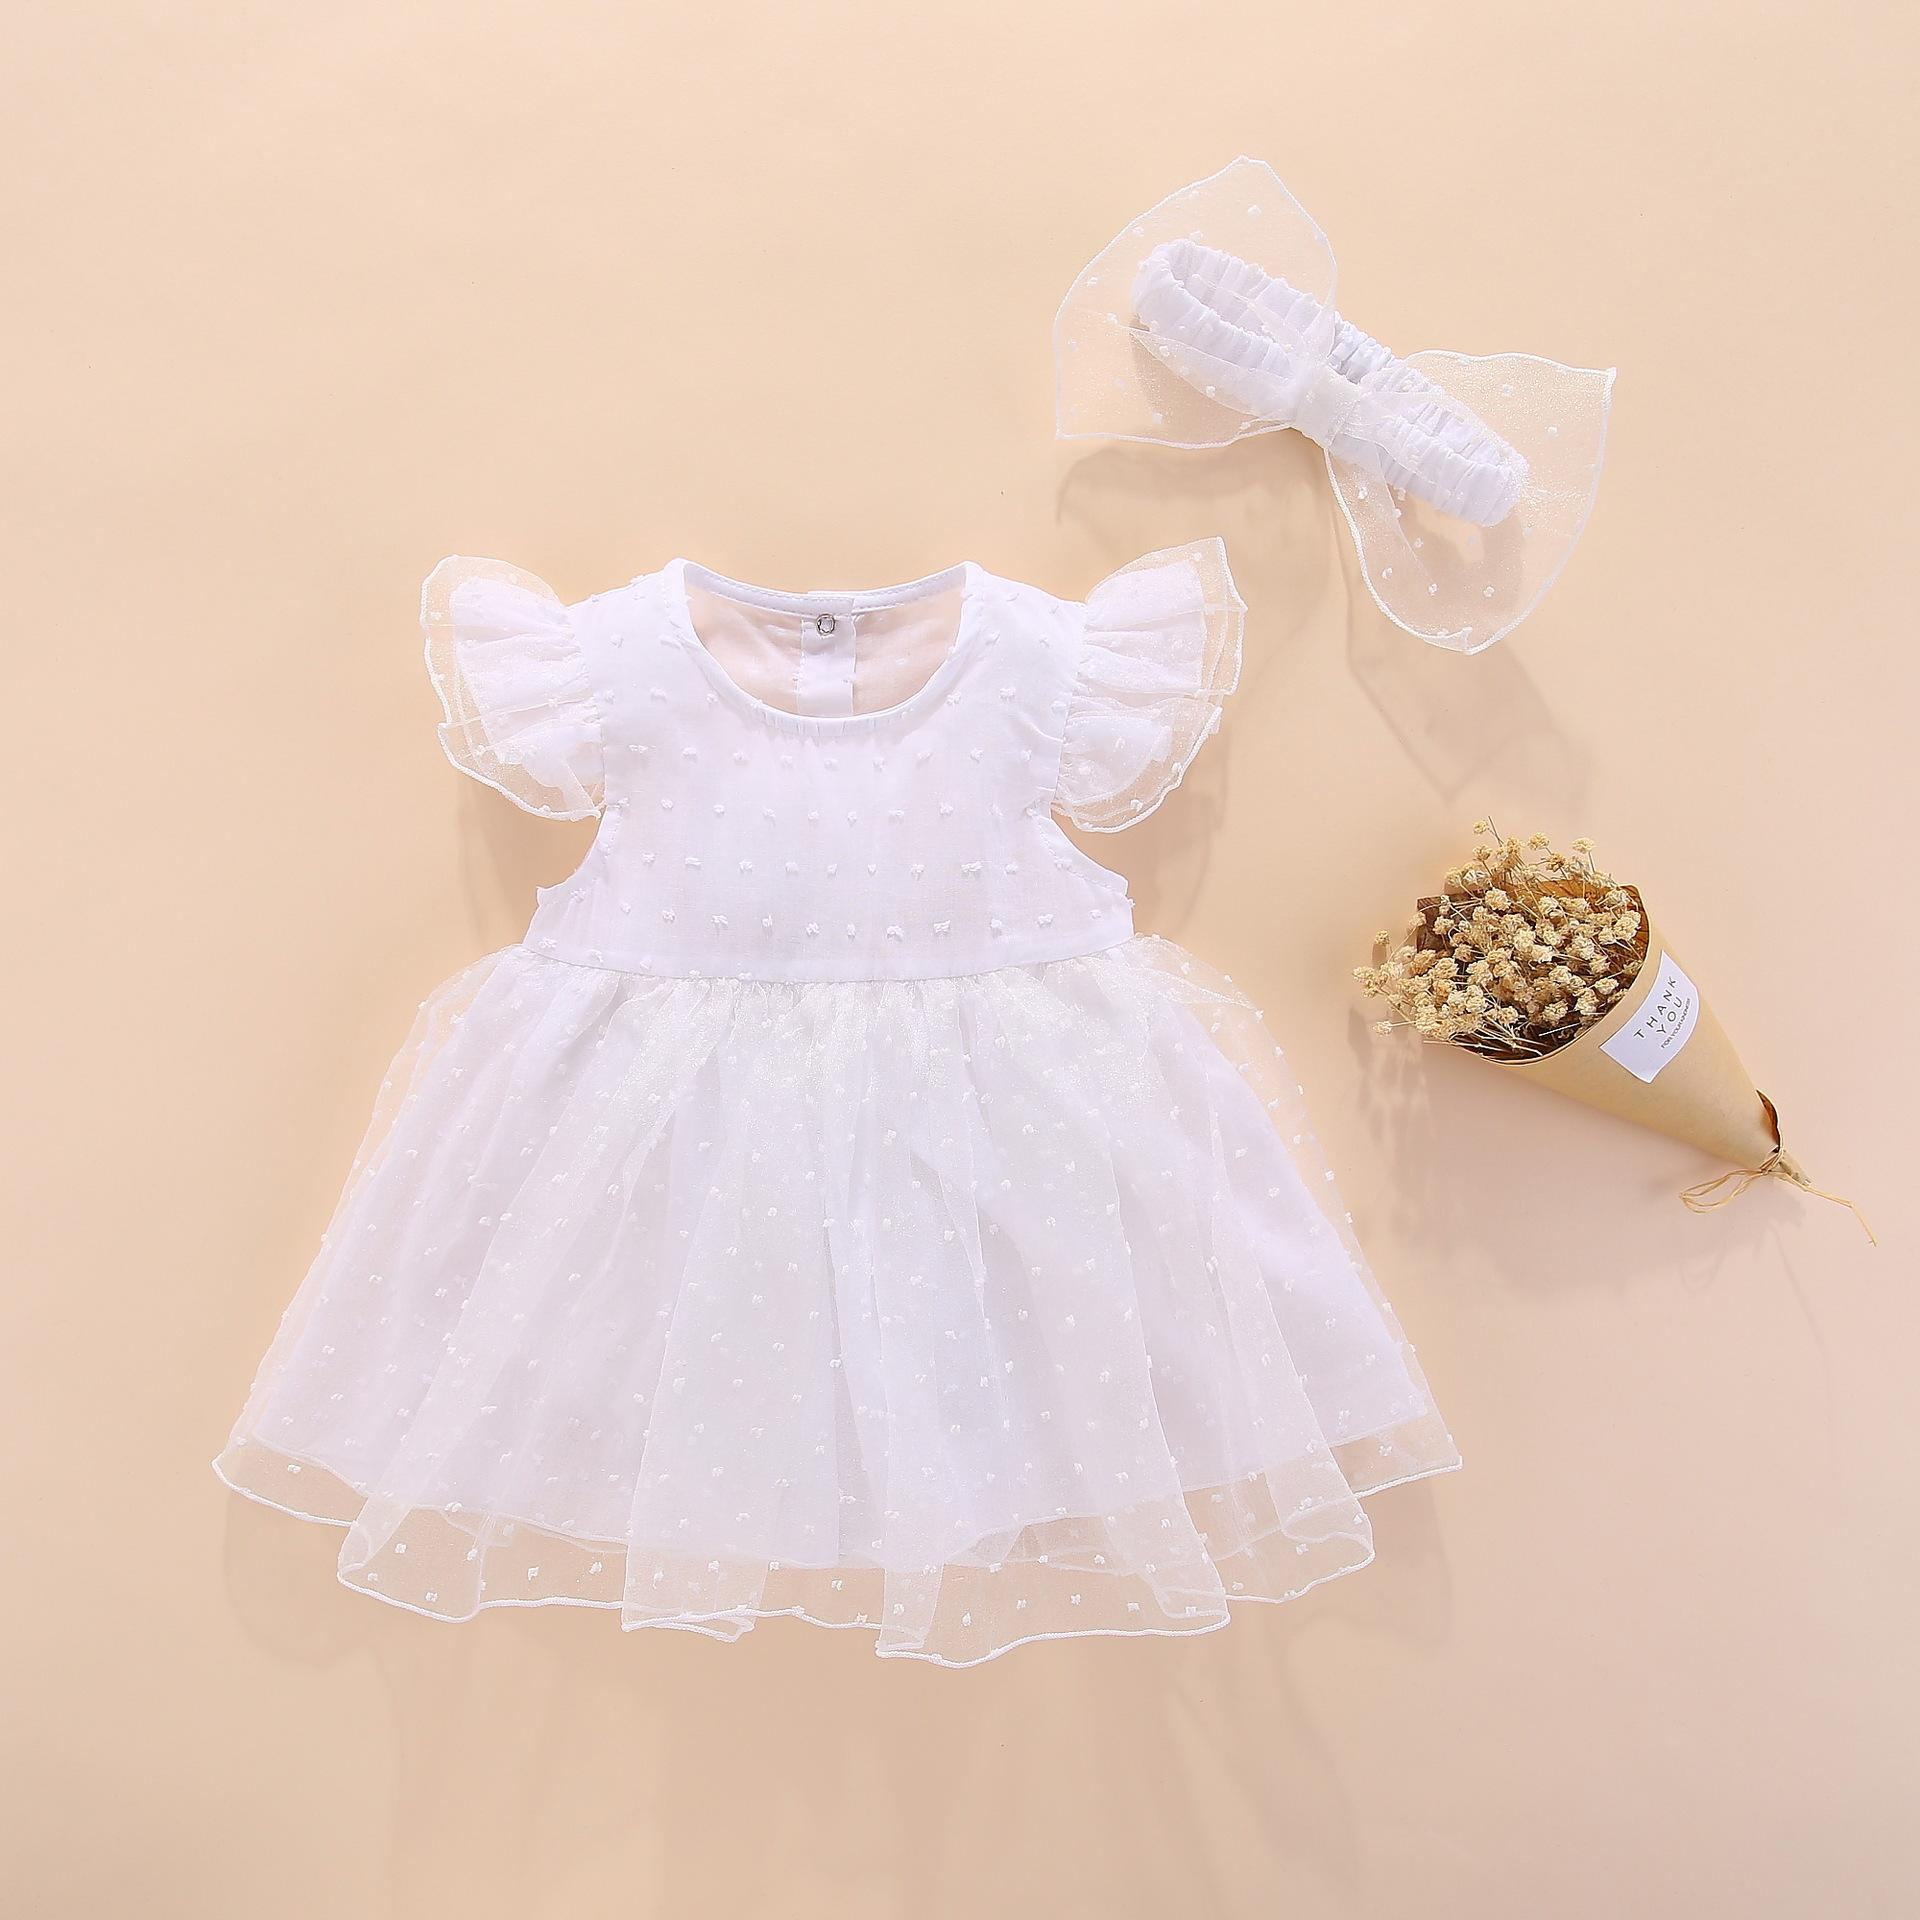 Baby Girls Sequins Romper Jumpsuit Lace Bodysuit Dresses First Birthday Outfits